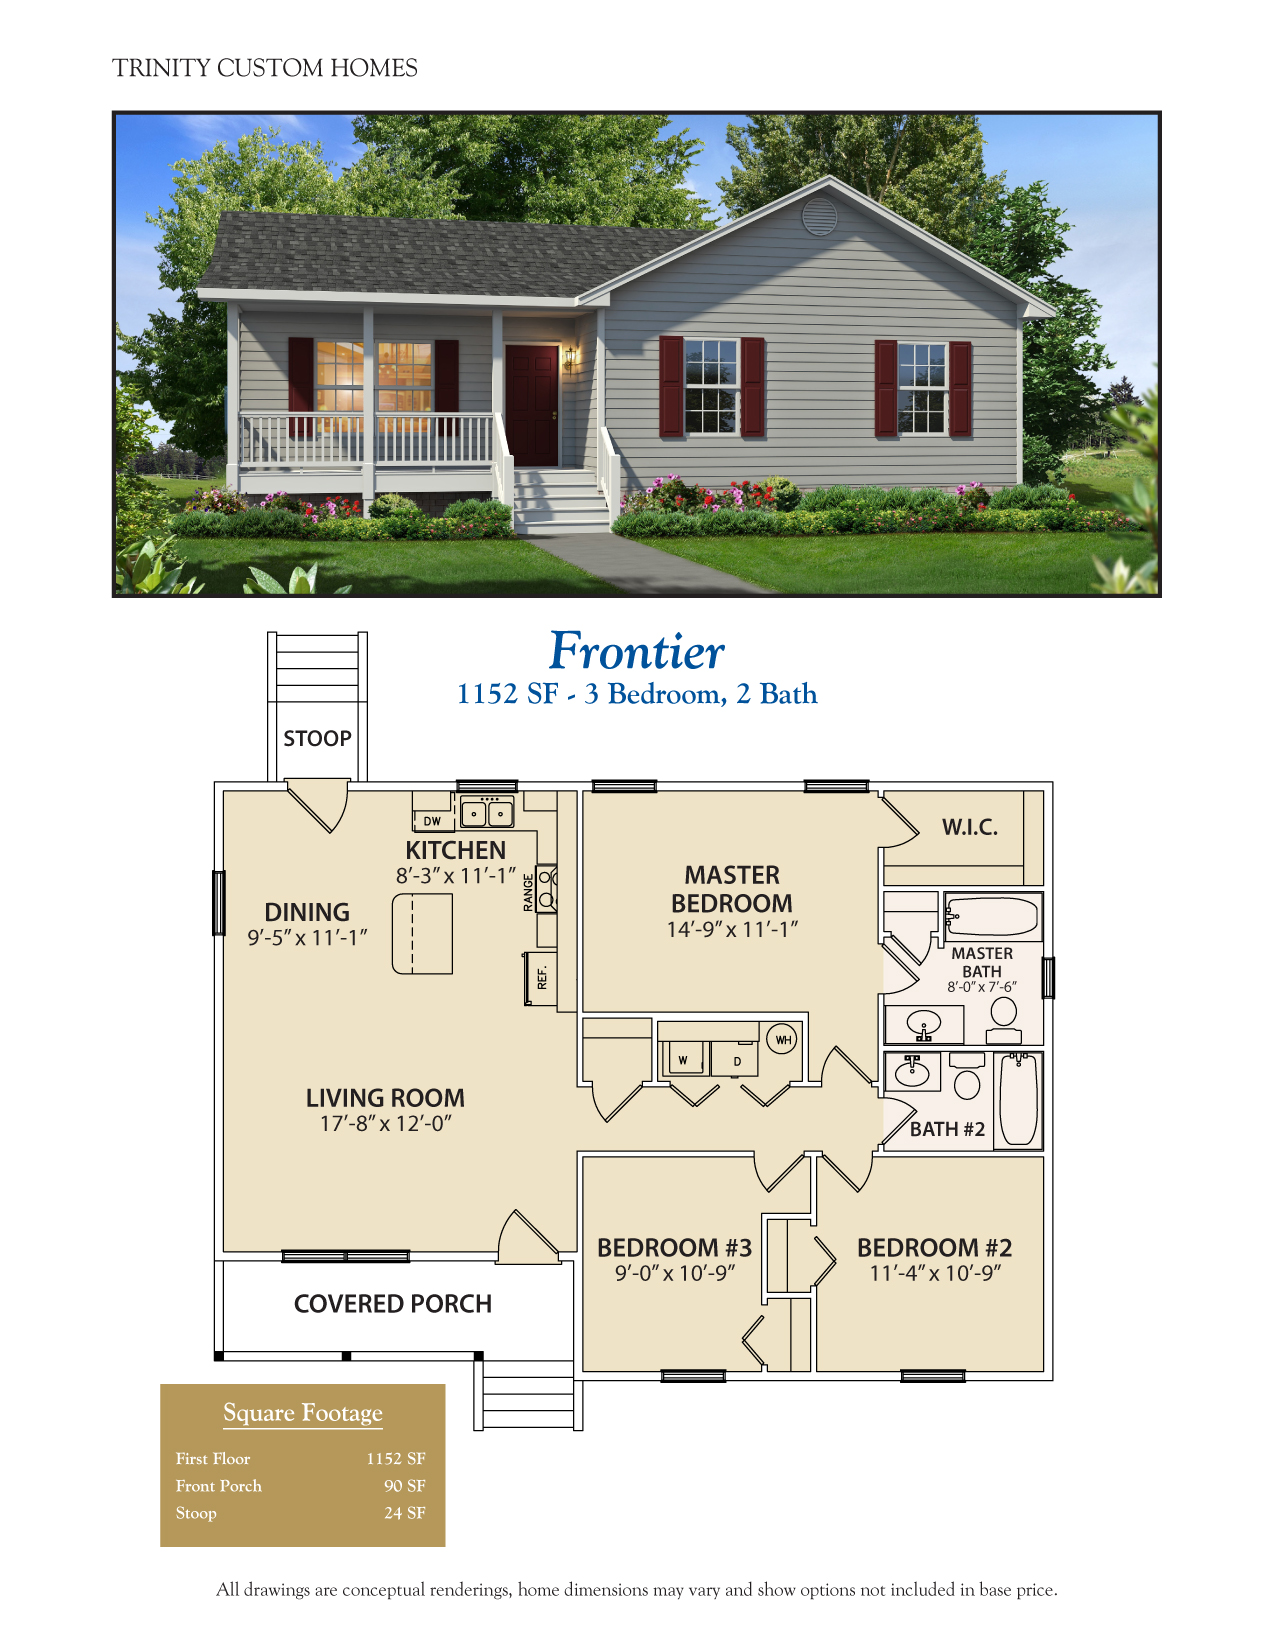 Trinity custom homes floor plans gurus floor for Custom house blueprints